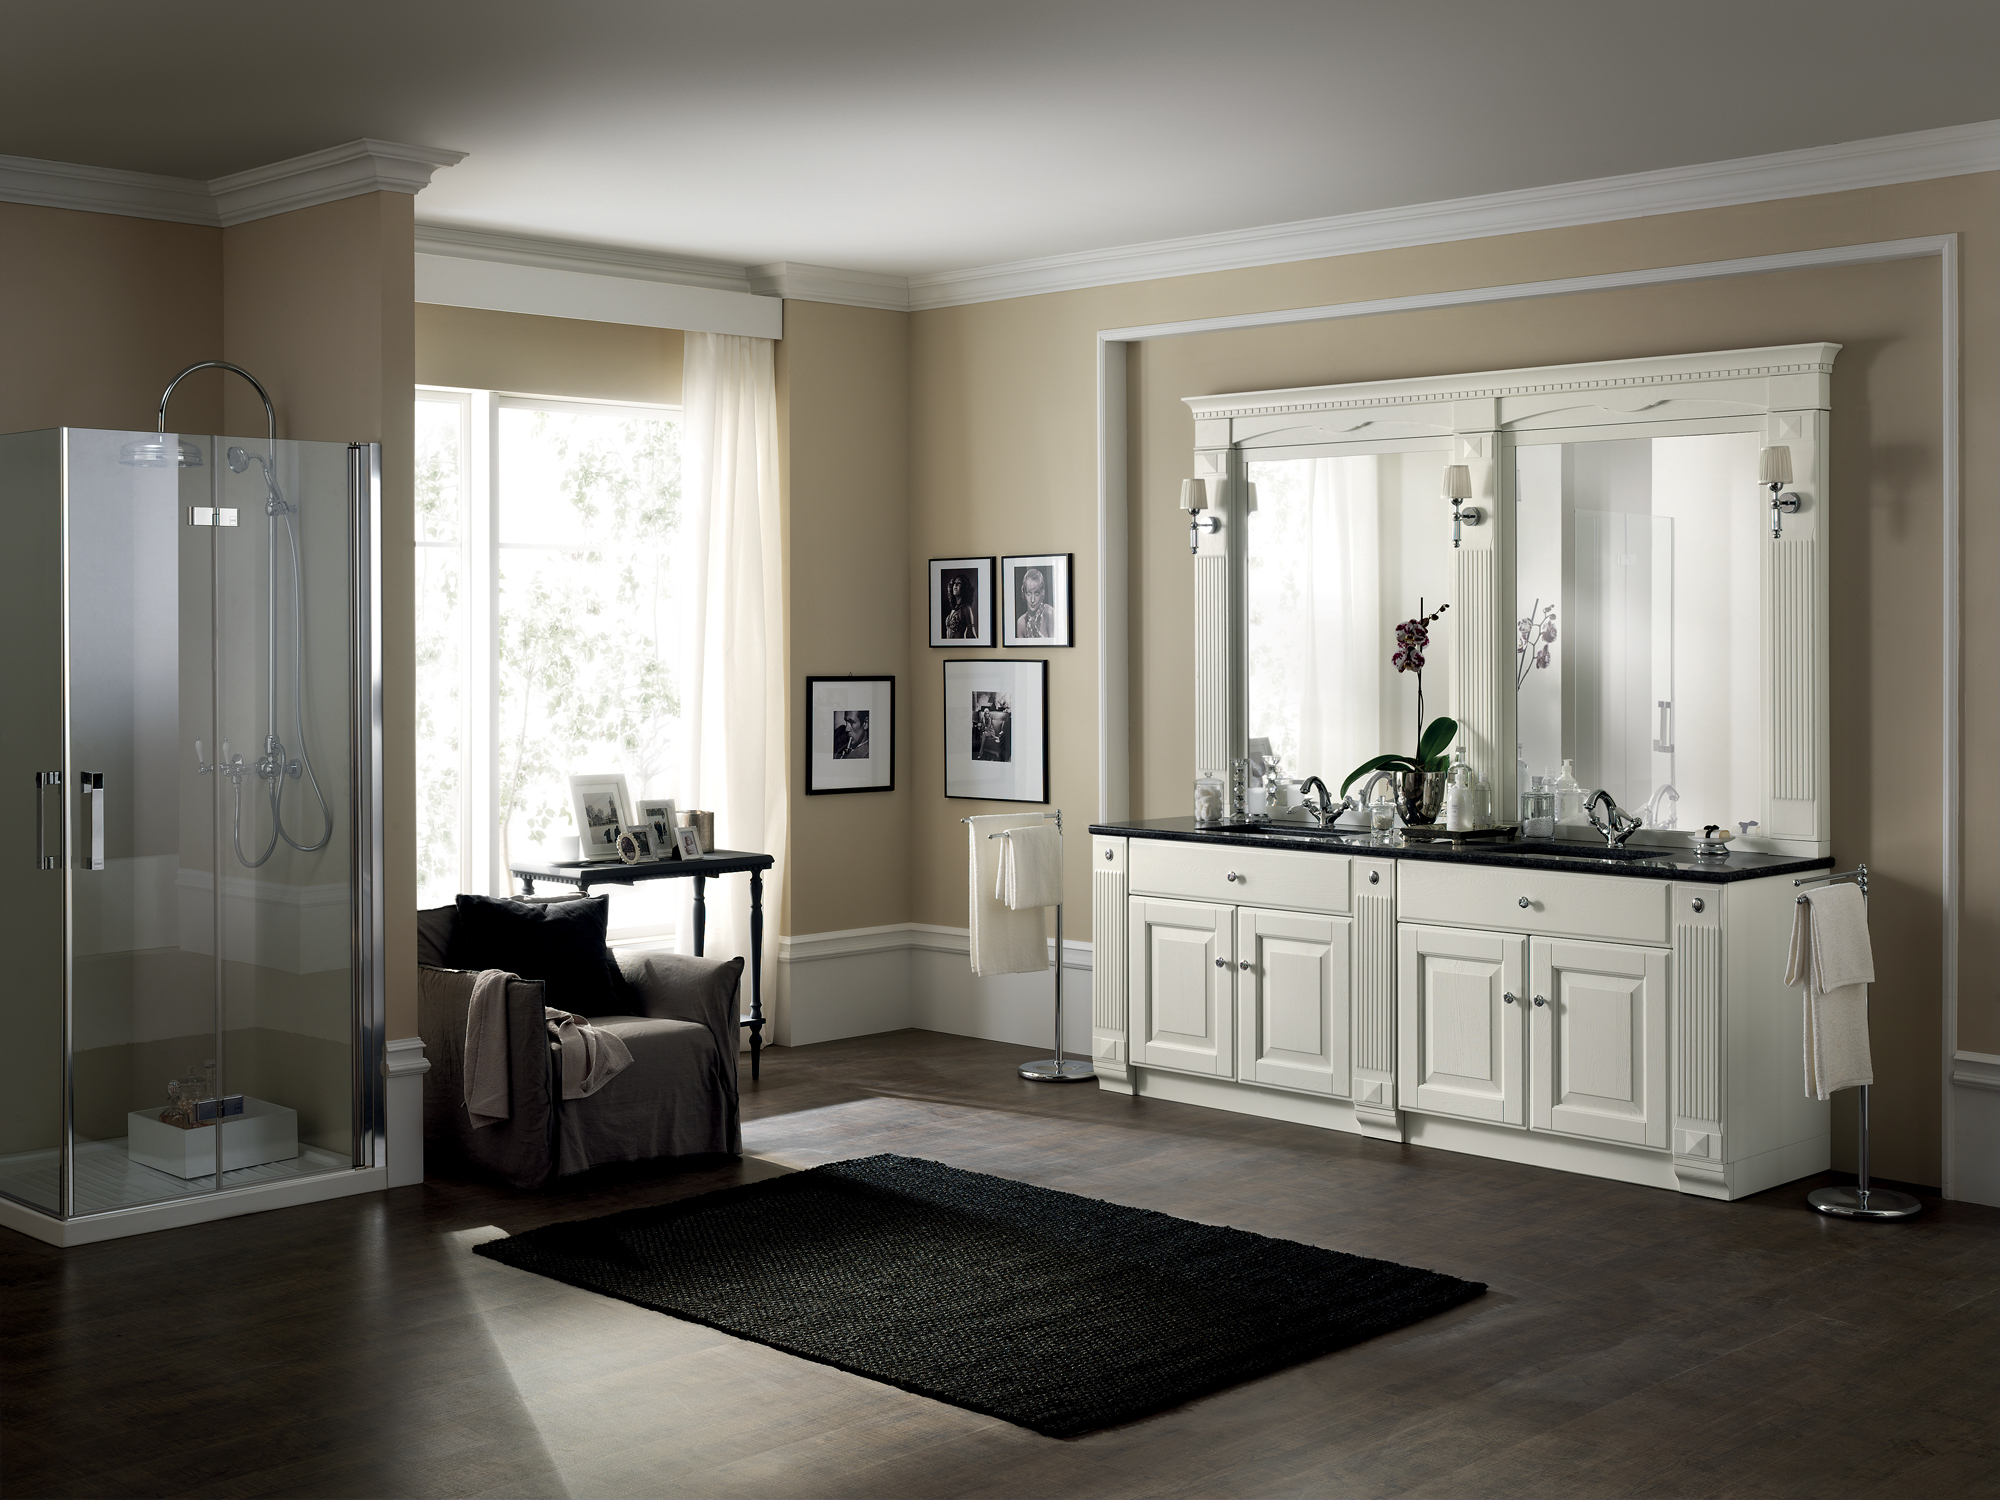 Arredo bagno completo BALTIMORA by Scavolini Bathrooms design Vuesse Design